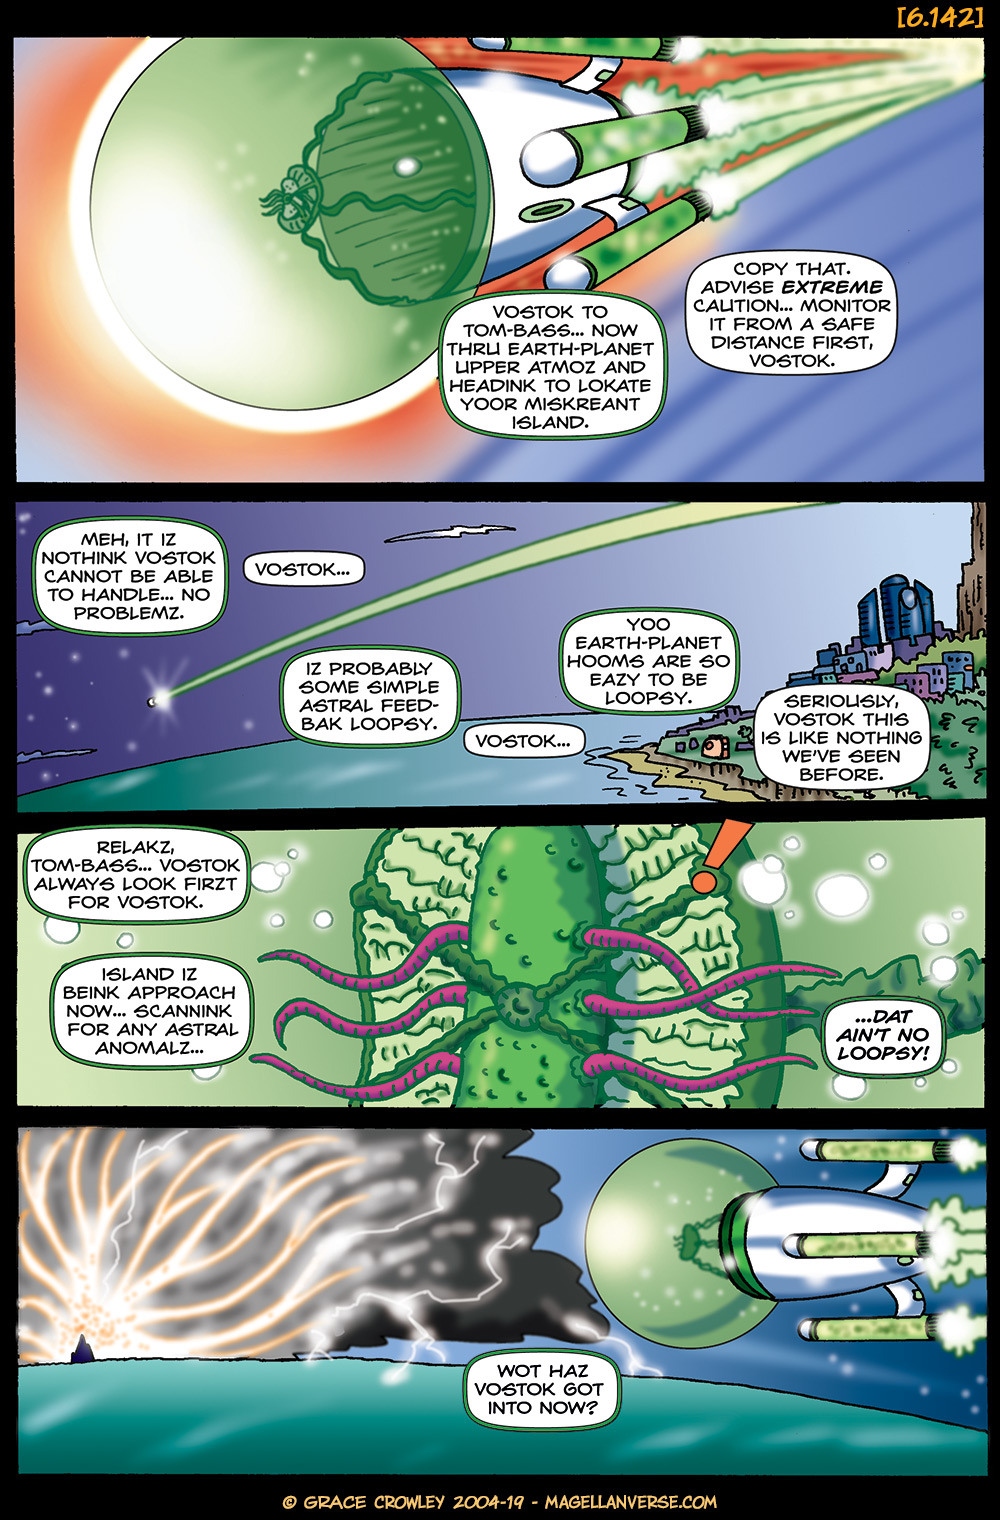 Page 6.142